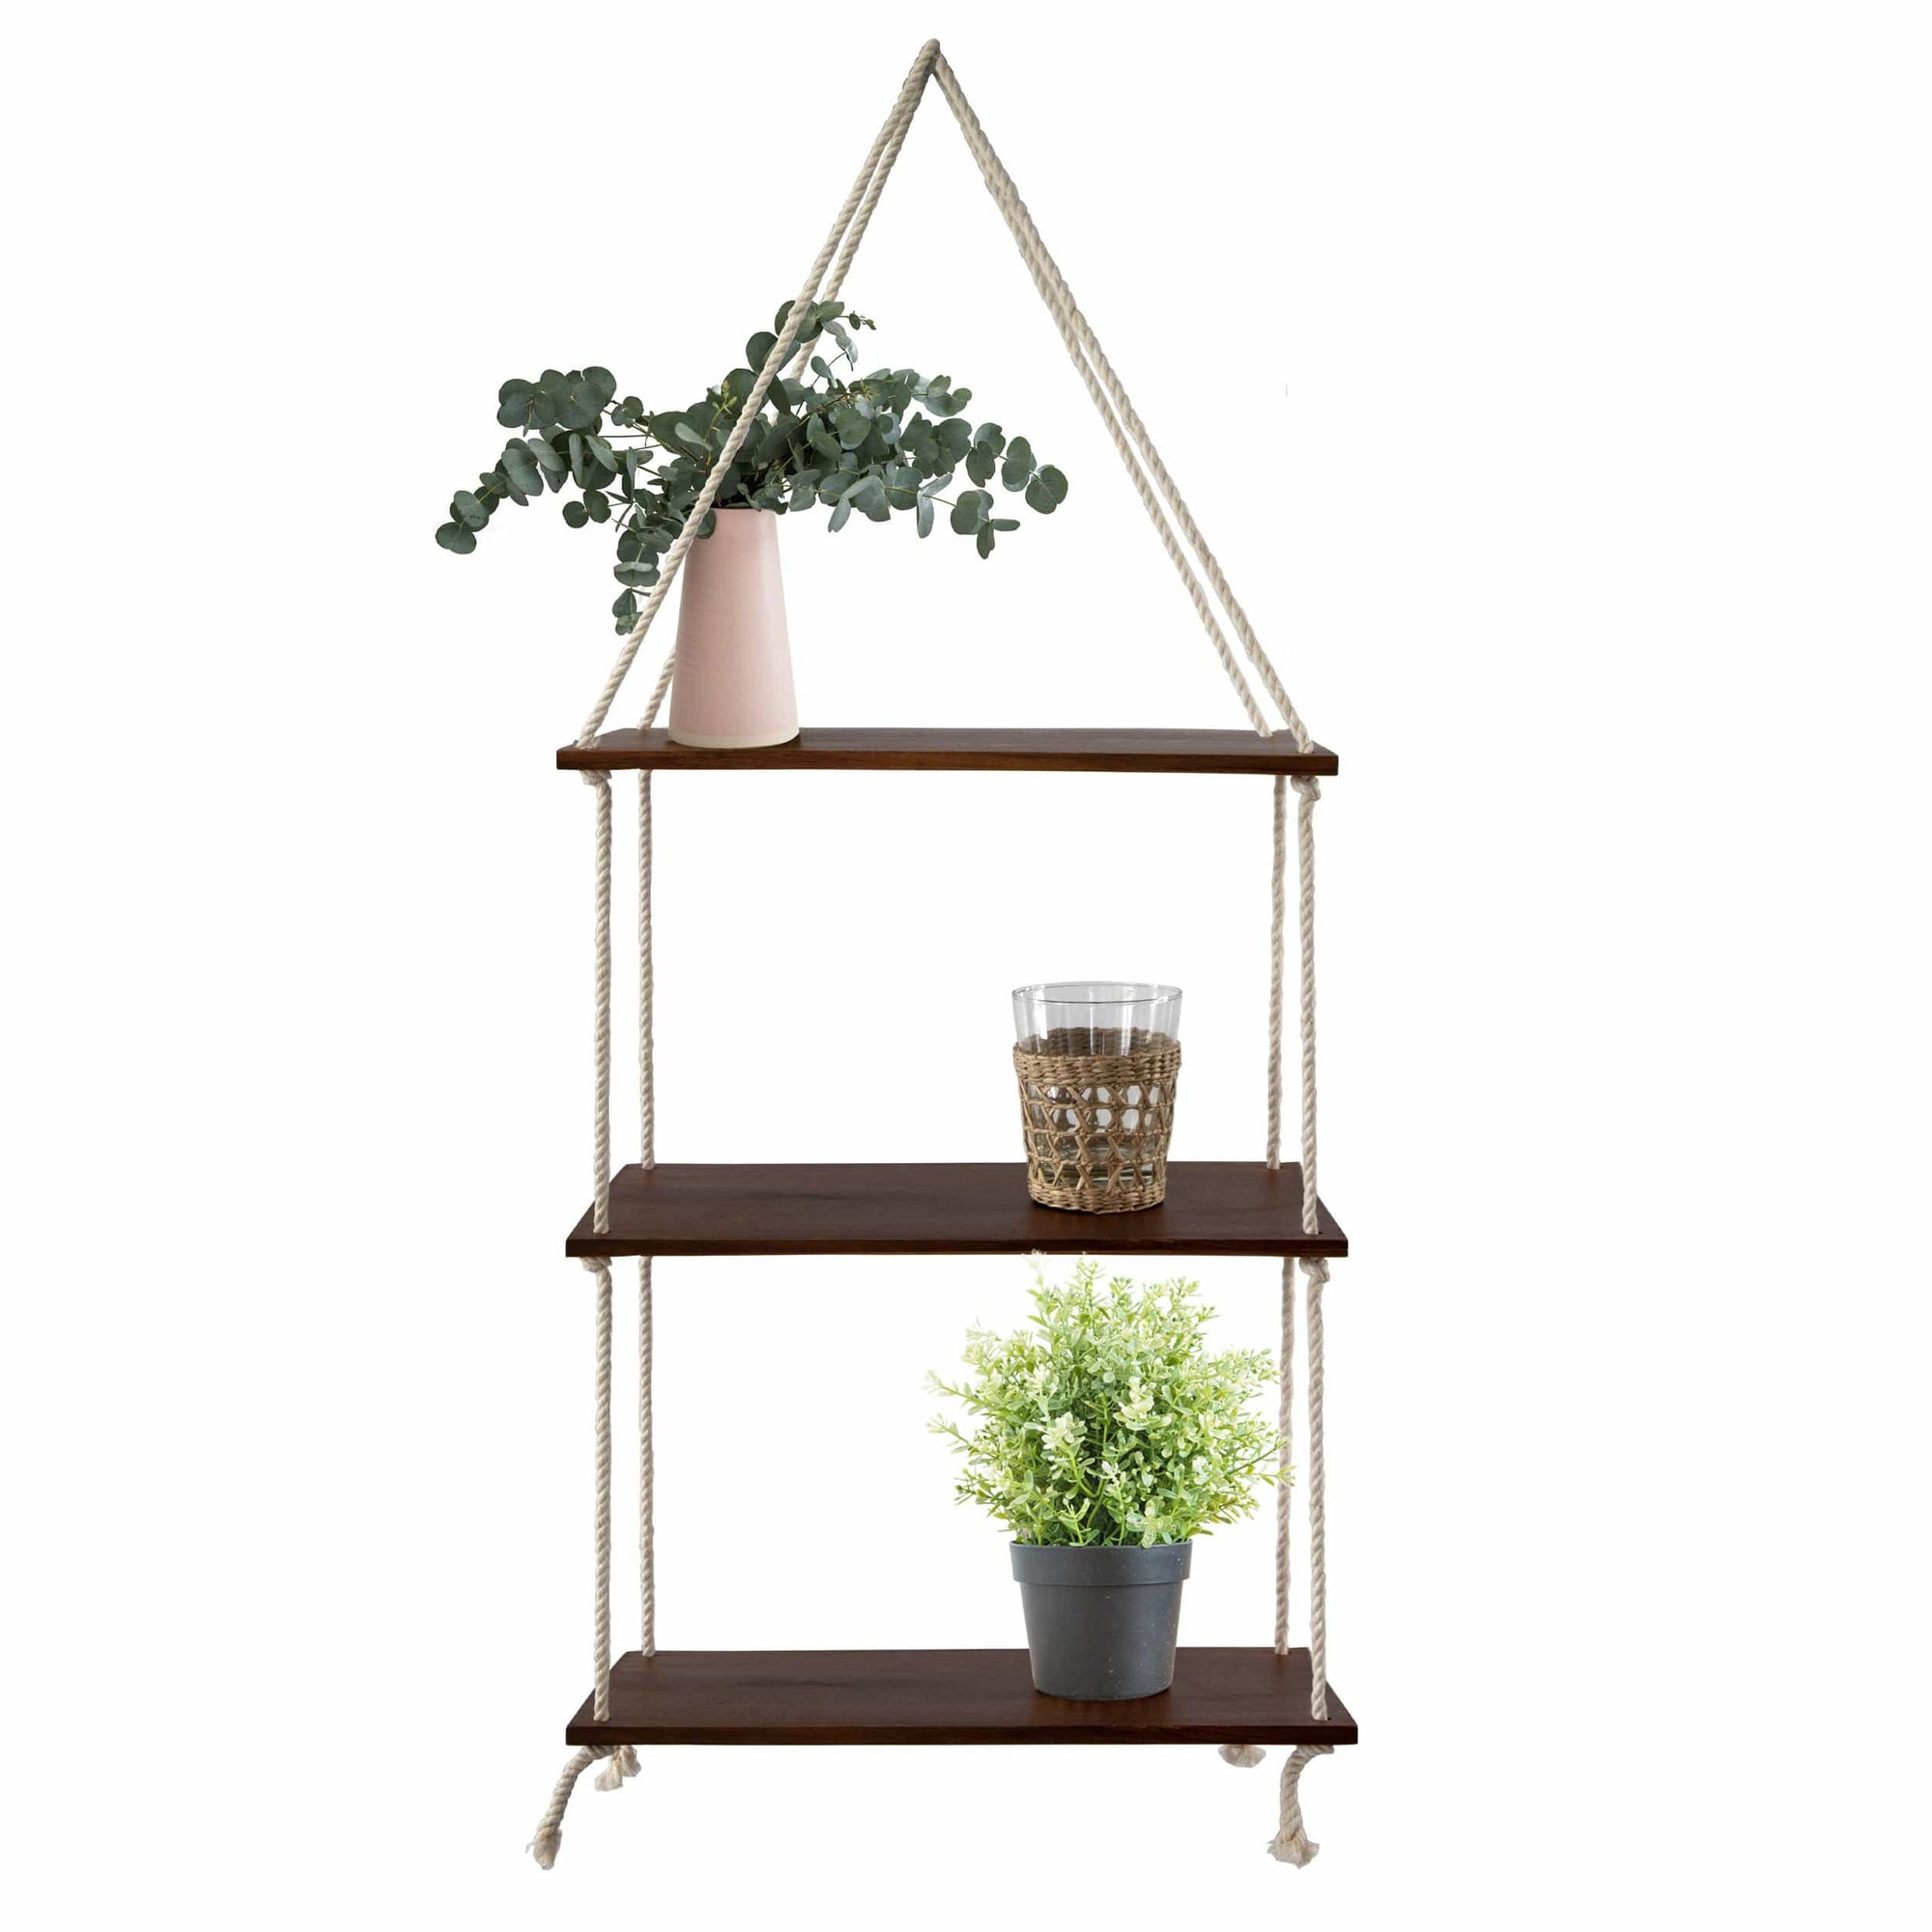 Made Terra 3 Tier Wall Hanging Swing Rope Floating Shelf Rustic Wooden Wall Hanging Storage Shelves for Living Room, Bedroom, Bathroom and Kitchen